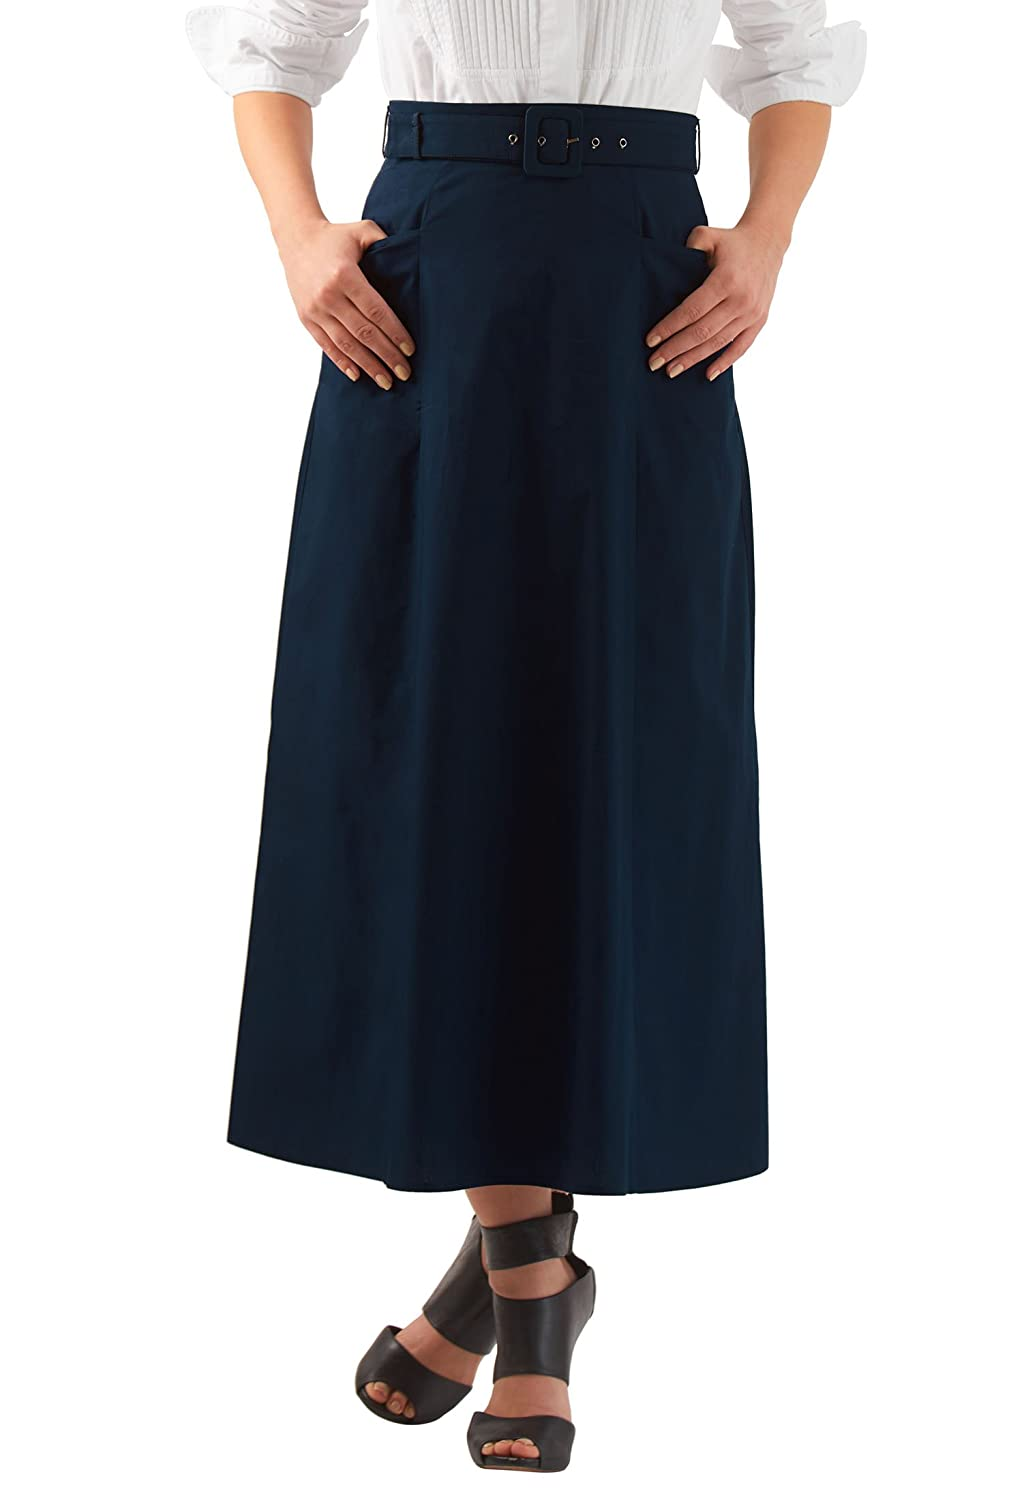 Retro Skirts: Vintage, Pencil, Circle, & Plus Sizes eShakti Womens Belted cotton poplin maxi skirt $37.95 AT vintagedancer.com